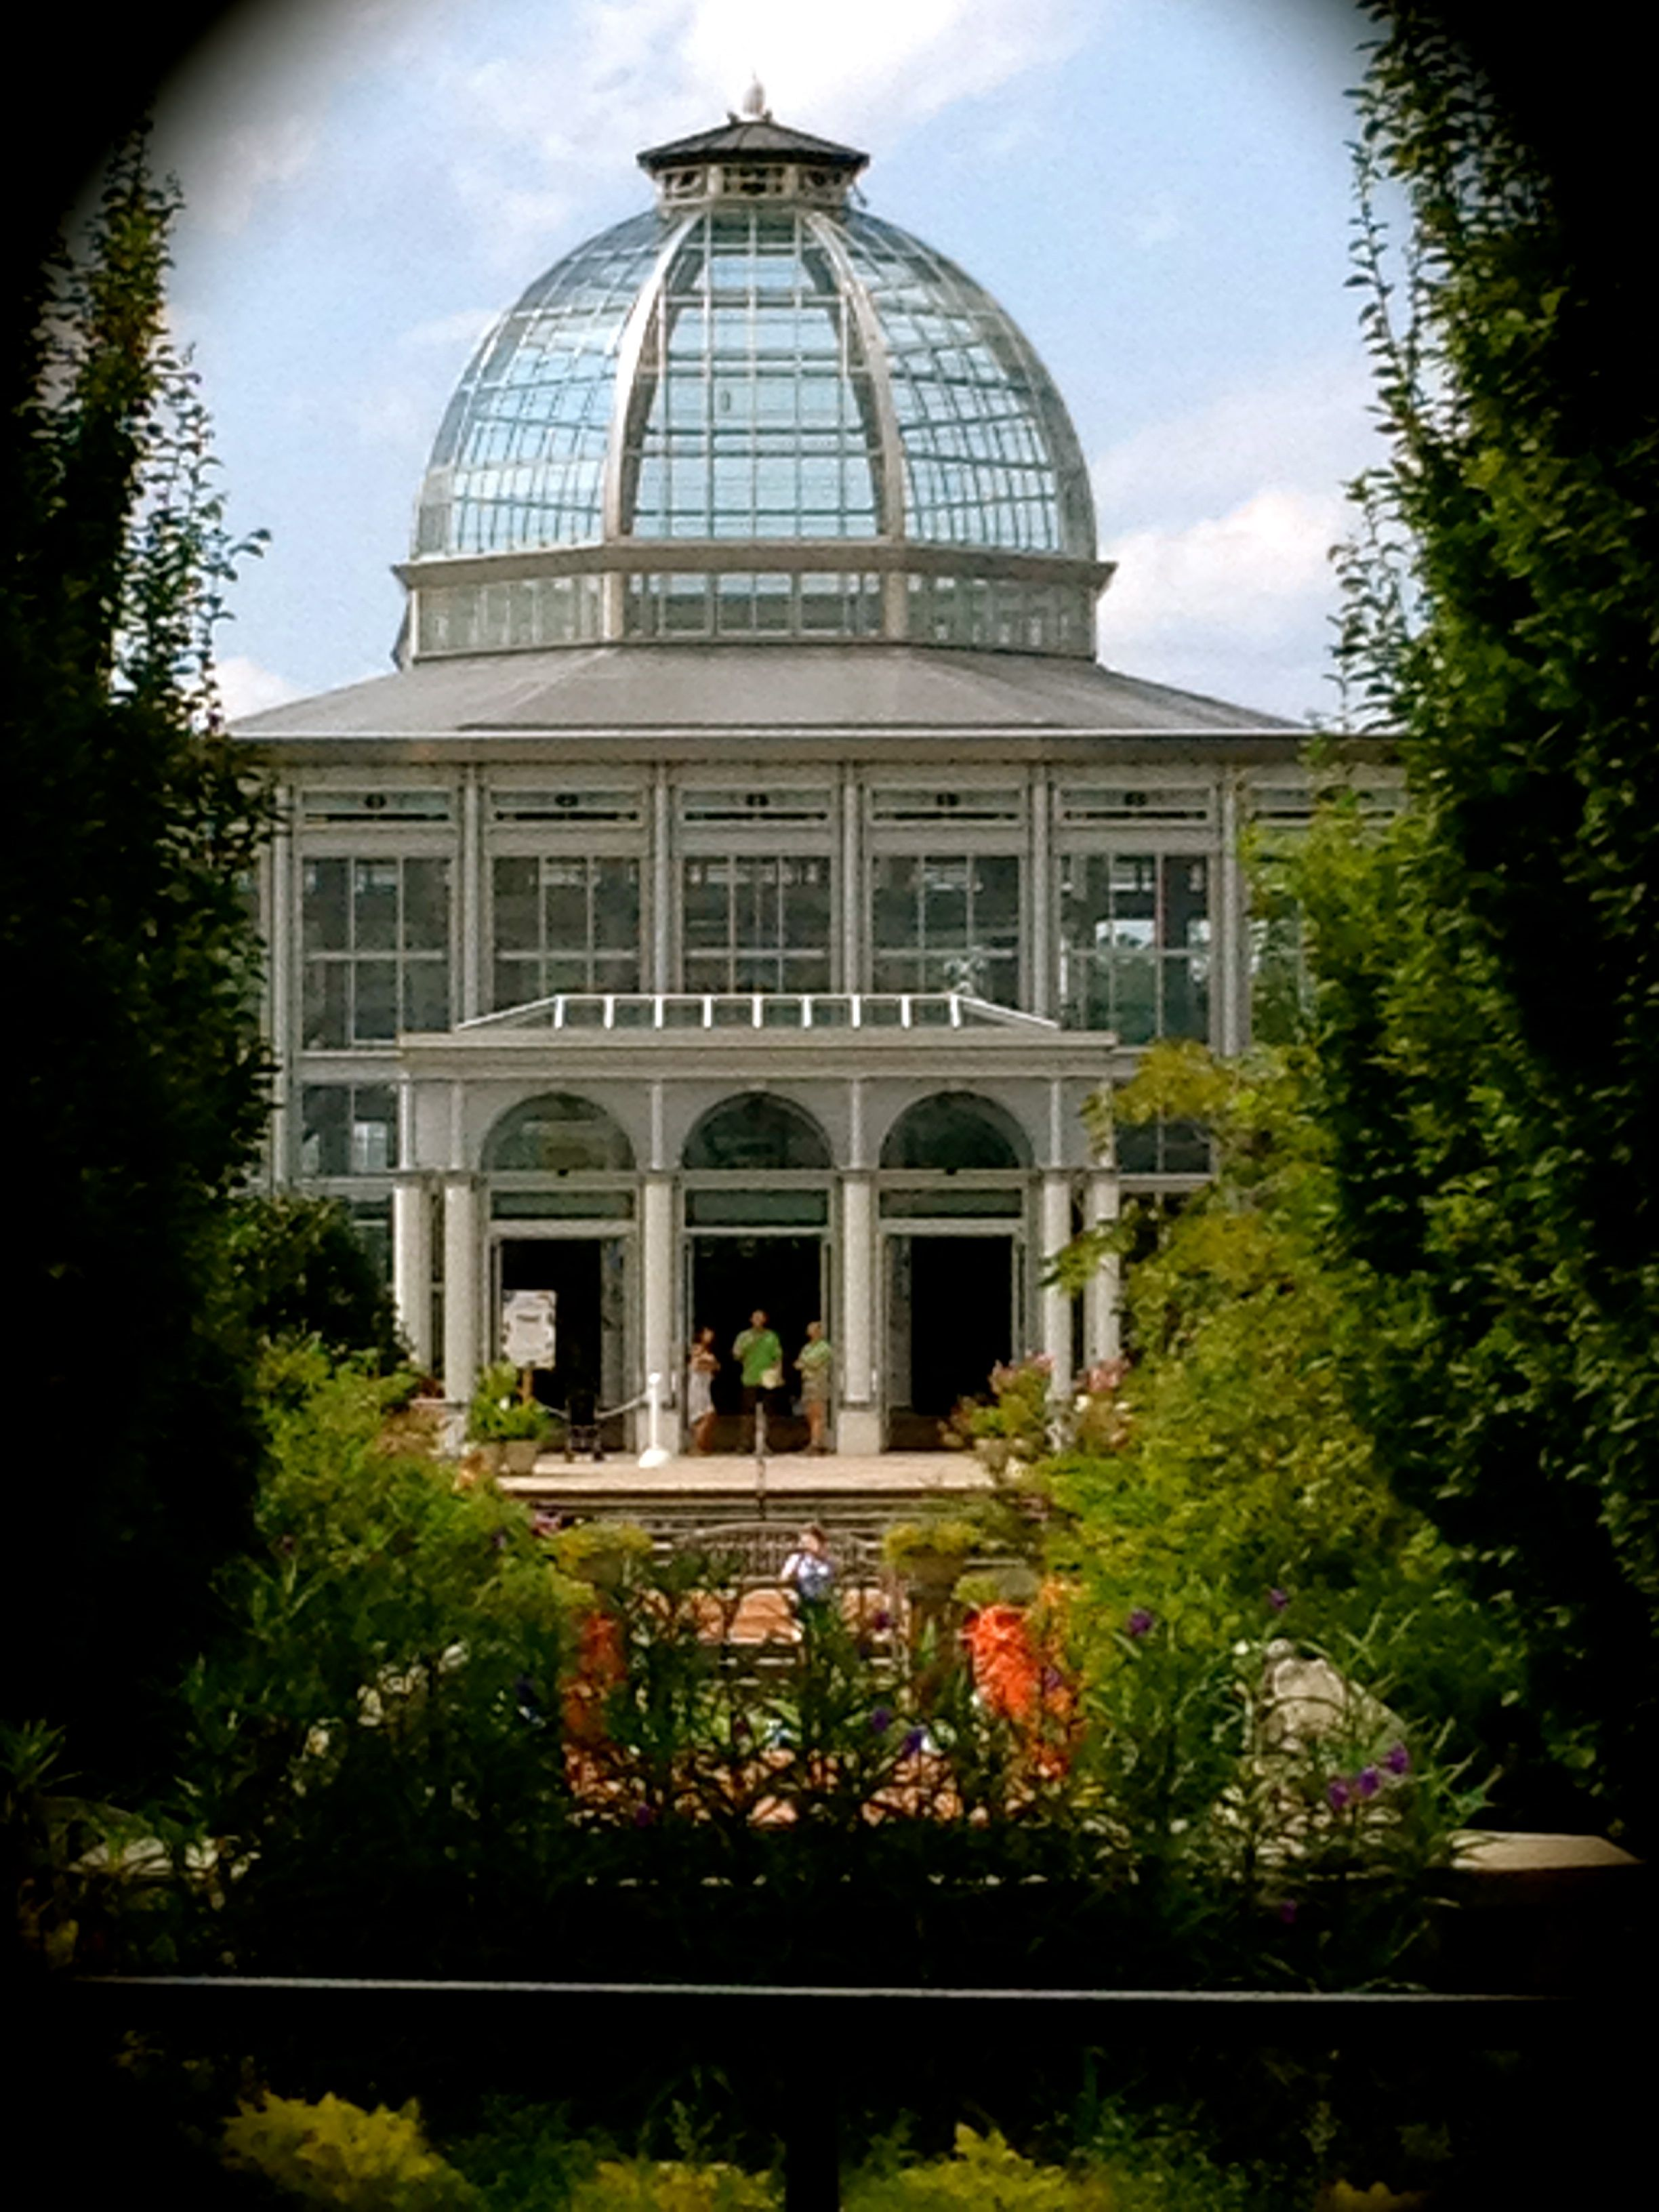 Beautiful conservatory at Lewis Ginter in Richmond